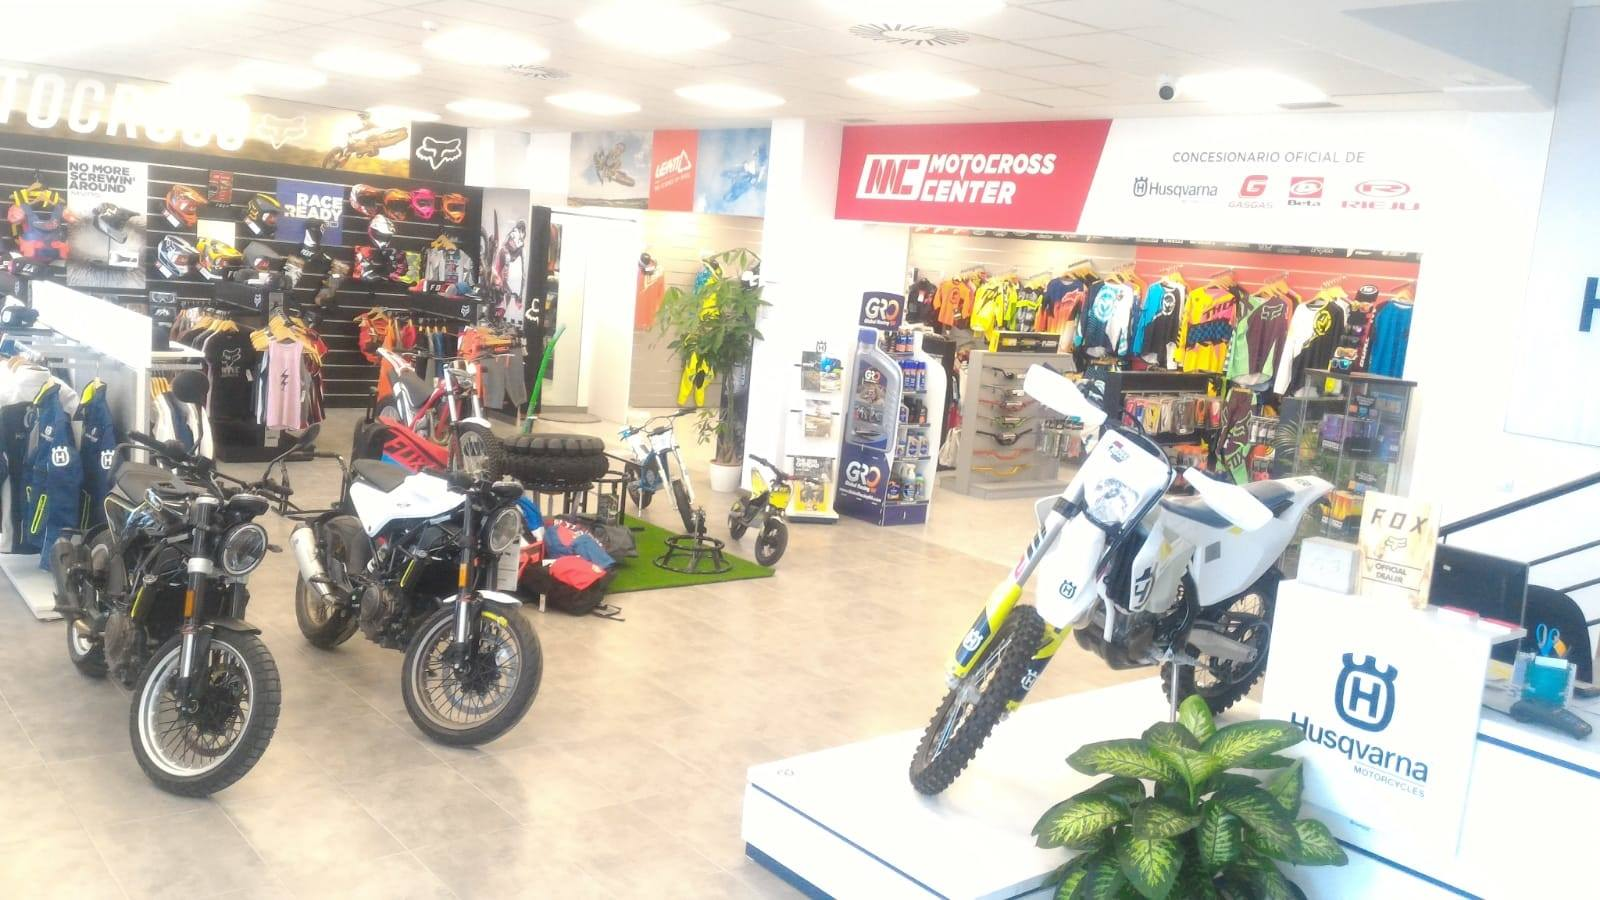 https://www.motocrosscenter.com/shop/blog/wp-content/uploads/2018/09/40571170_1952311381499004_5983474490888159232_o.jpg